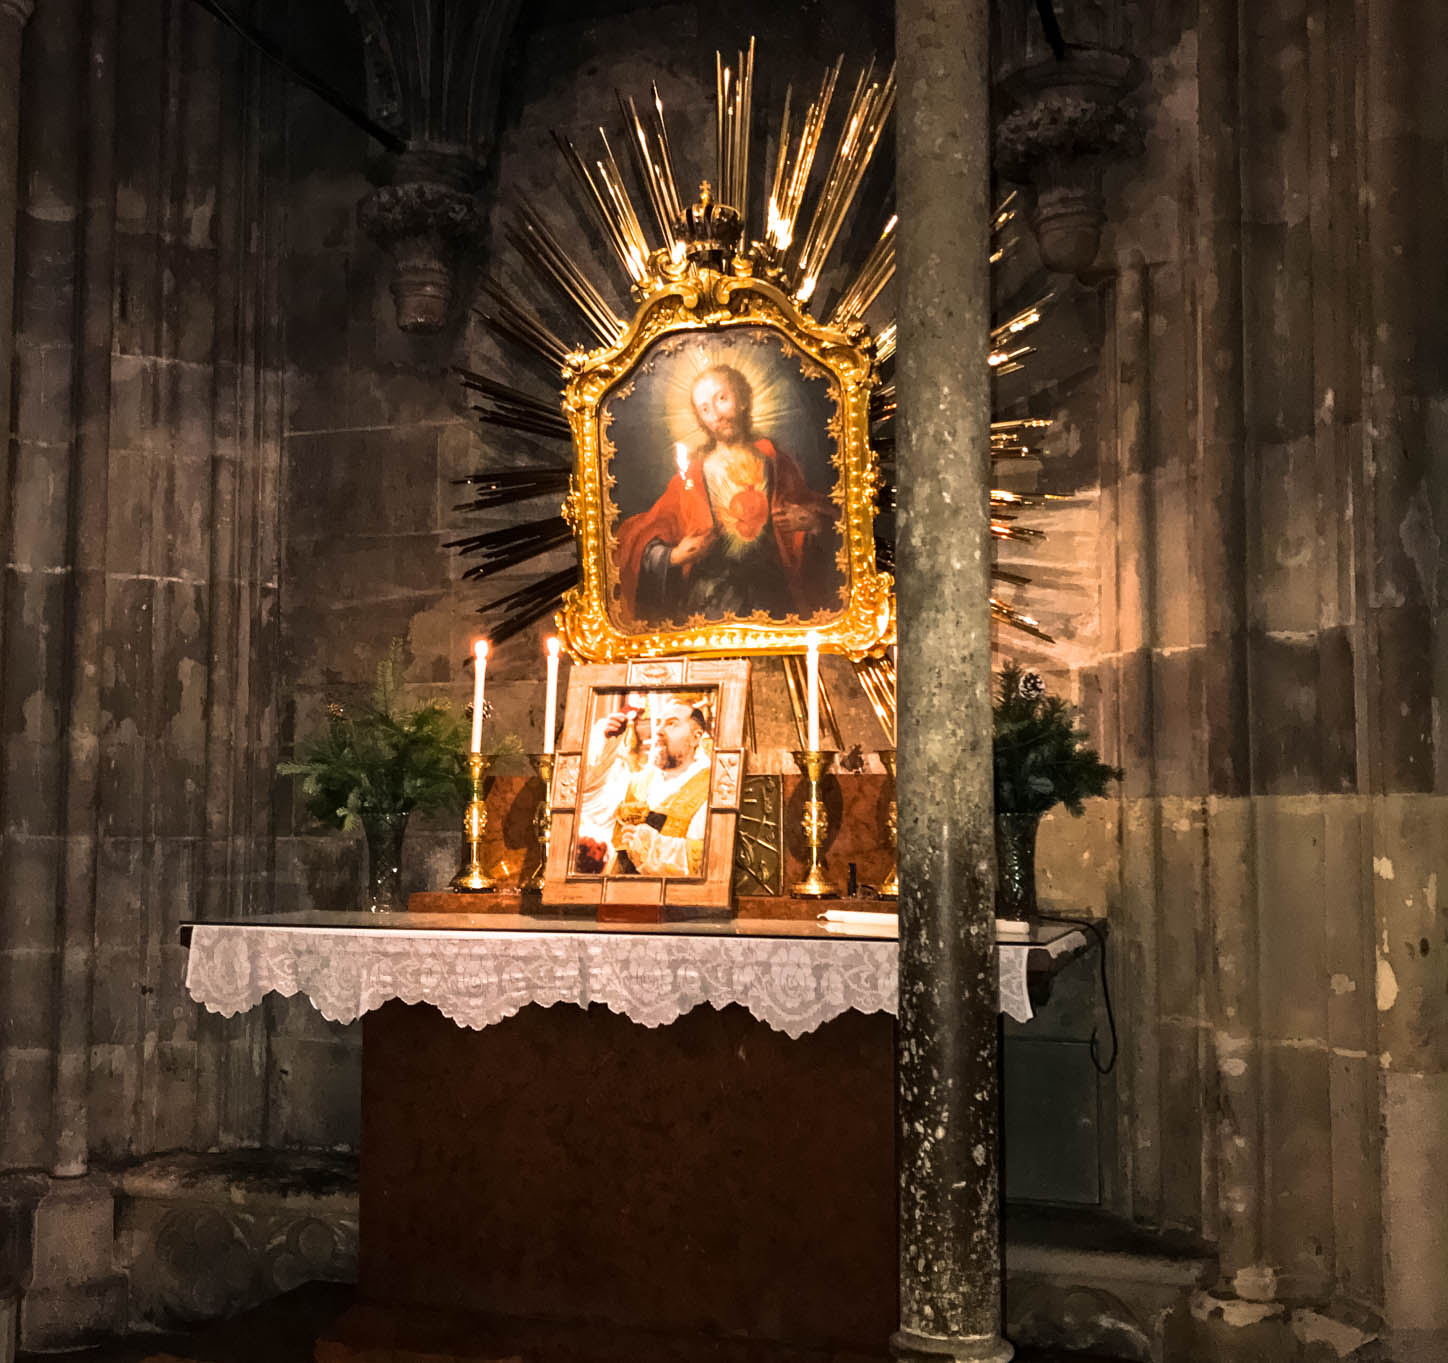 St. Stephens Cathedral Photo of Jesus